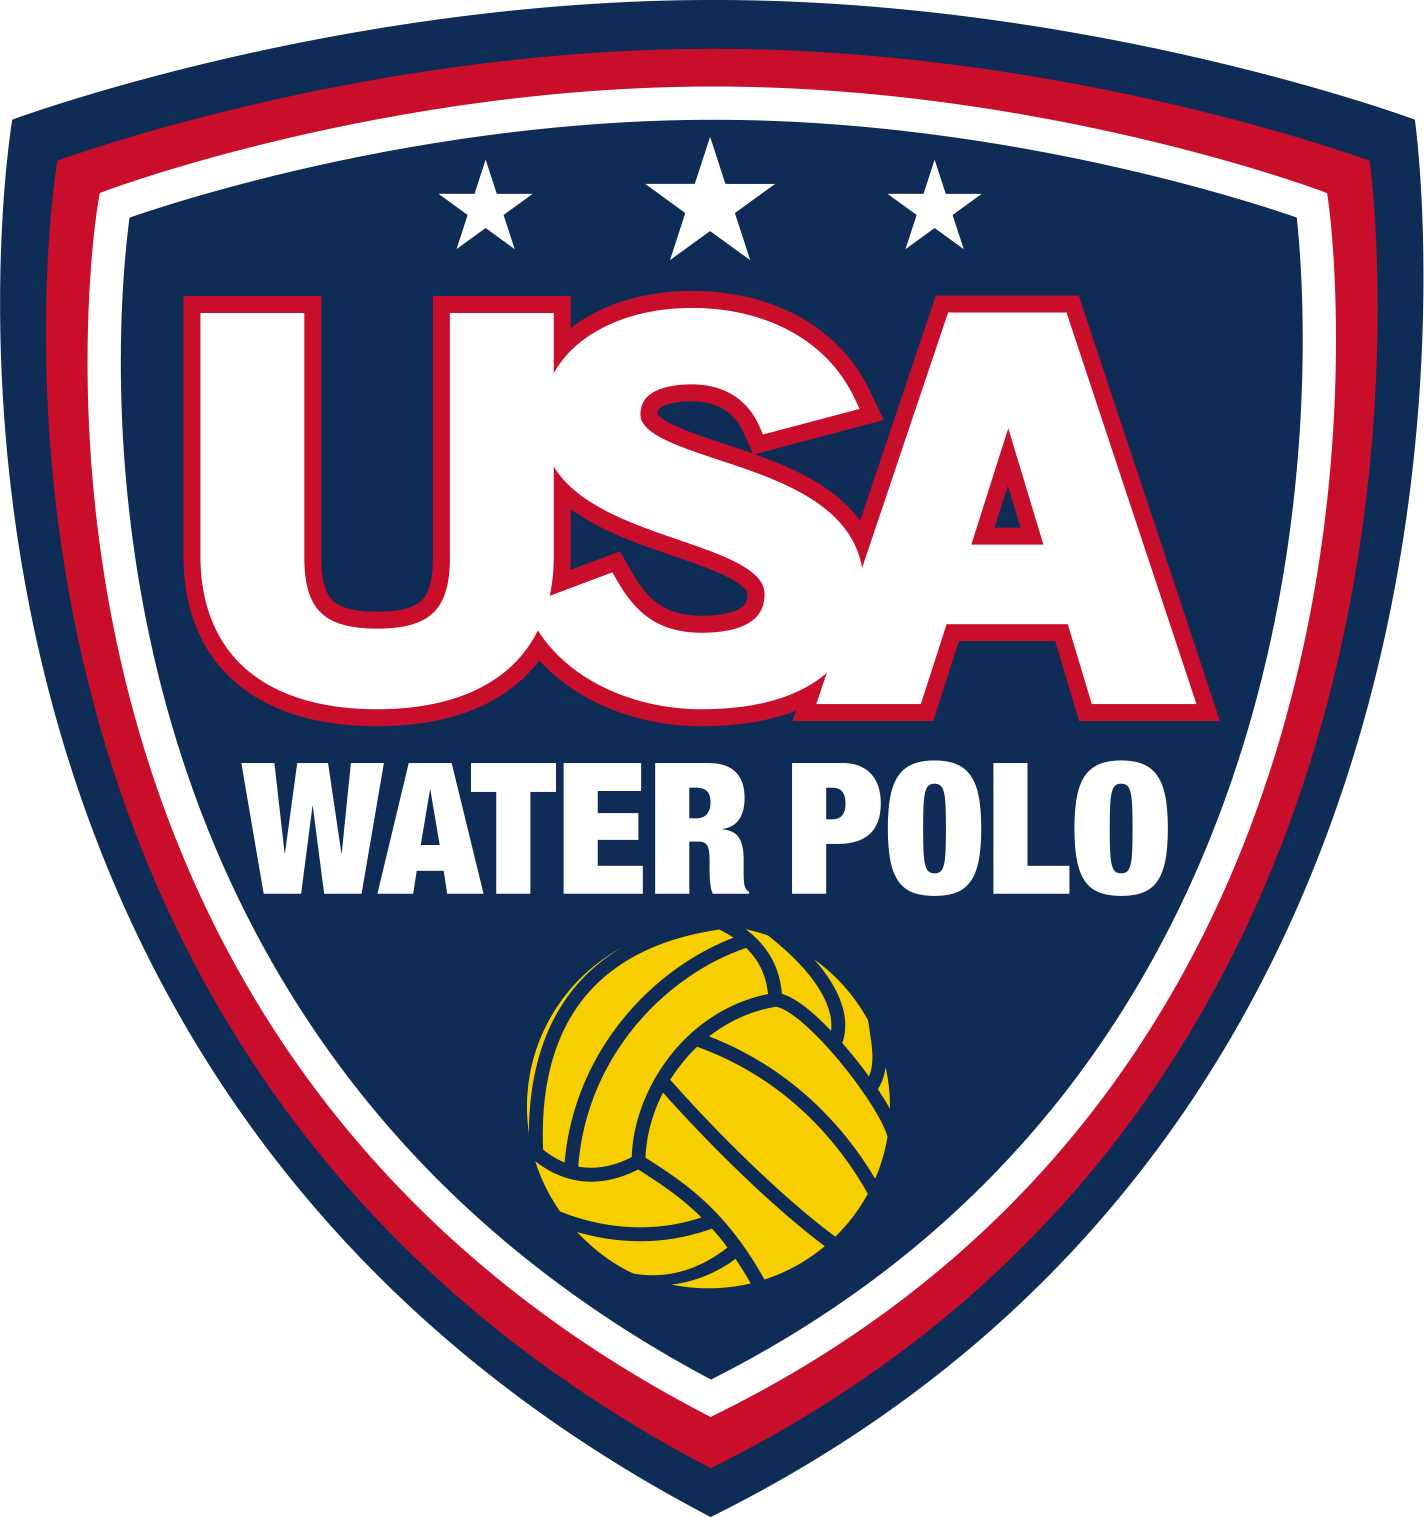 kisspng-united-states-usa-water-polo-sport-polo-5ad186d7ba7df2.8651047215236809837639.png